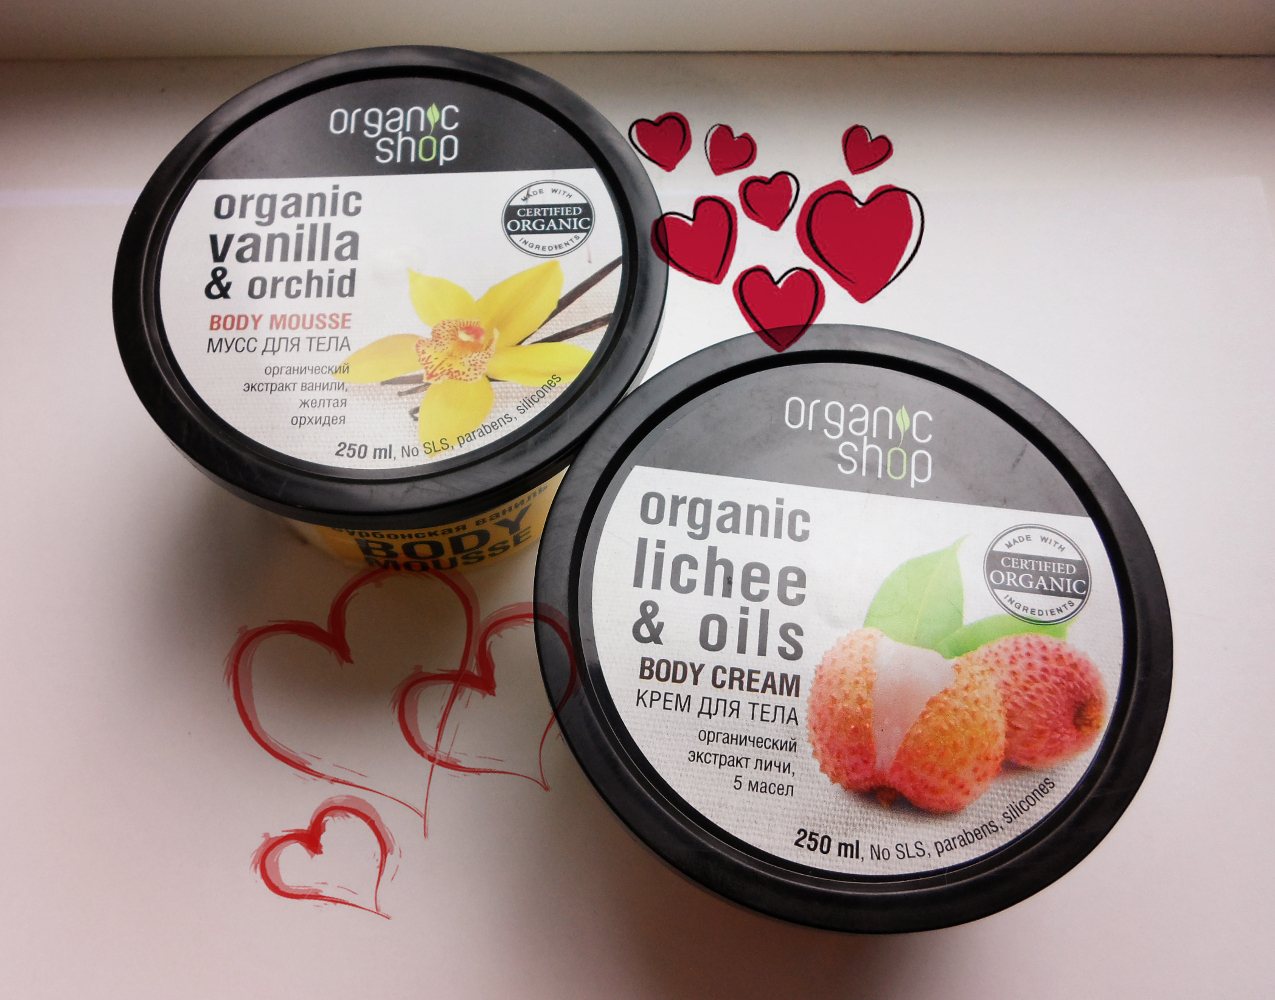 oa close-up picture of two skincare products by organic shop brand close to the window